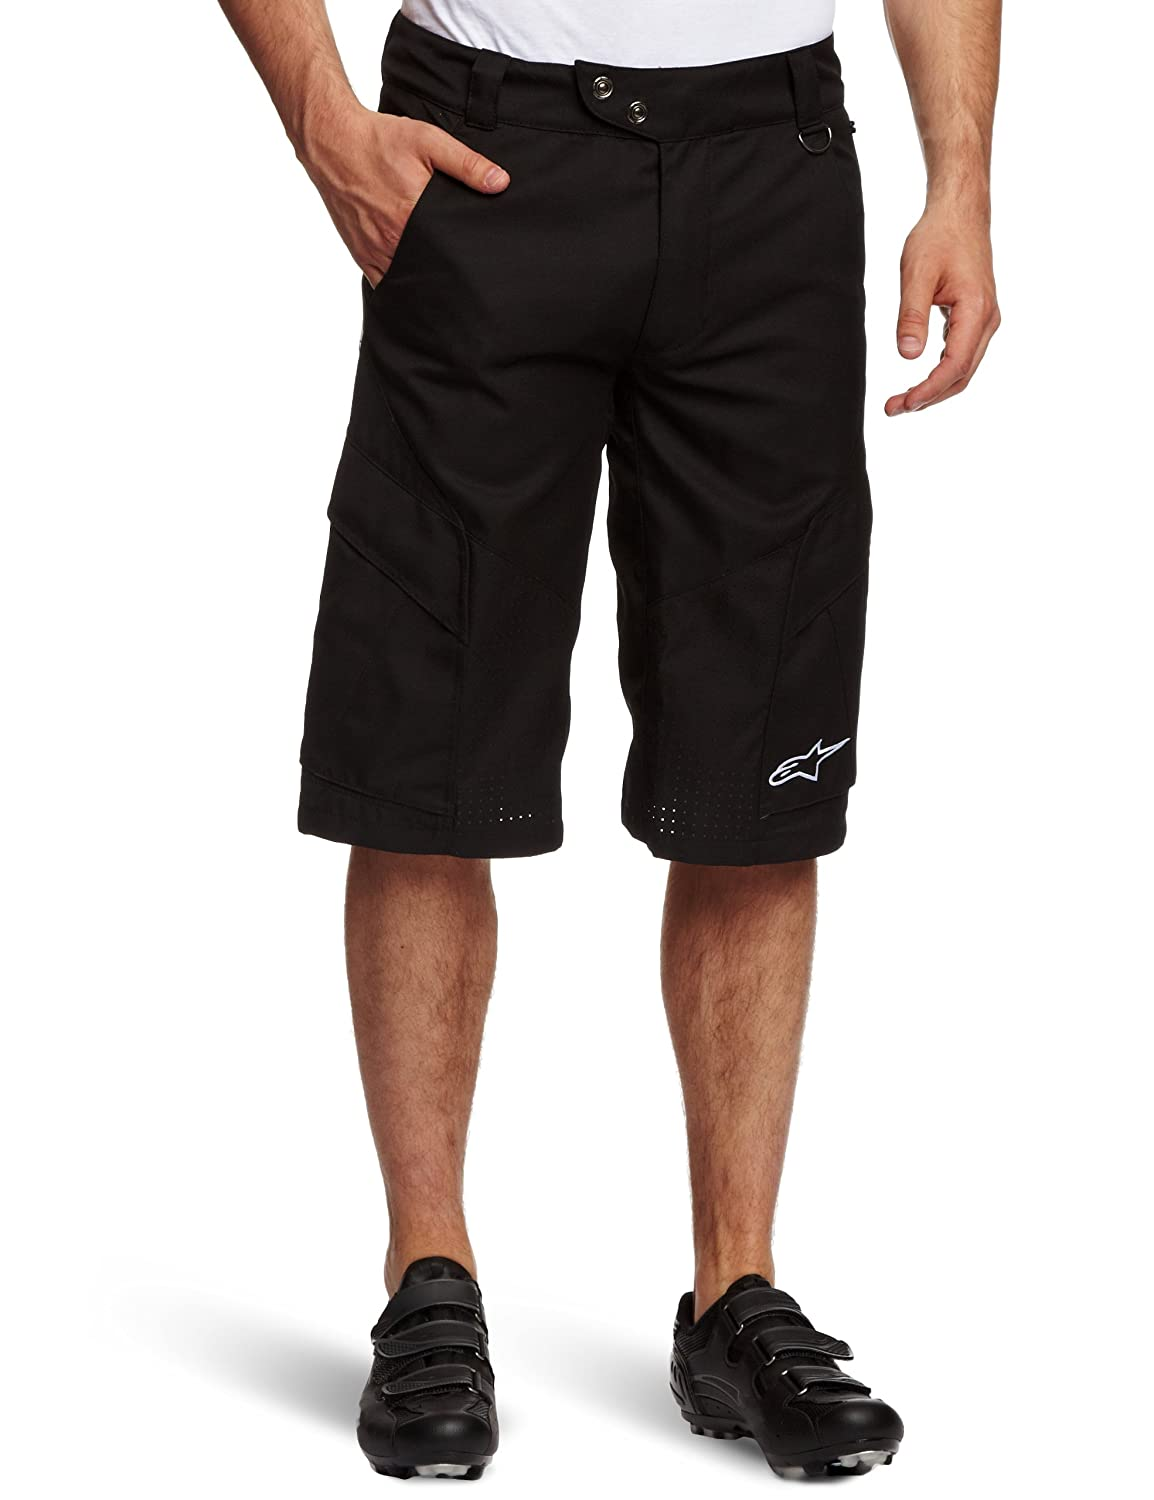 Alpinestars Bike Shorts Manual Shorts men